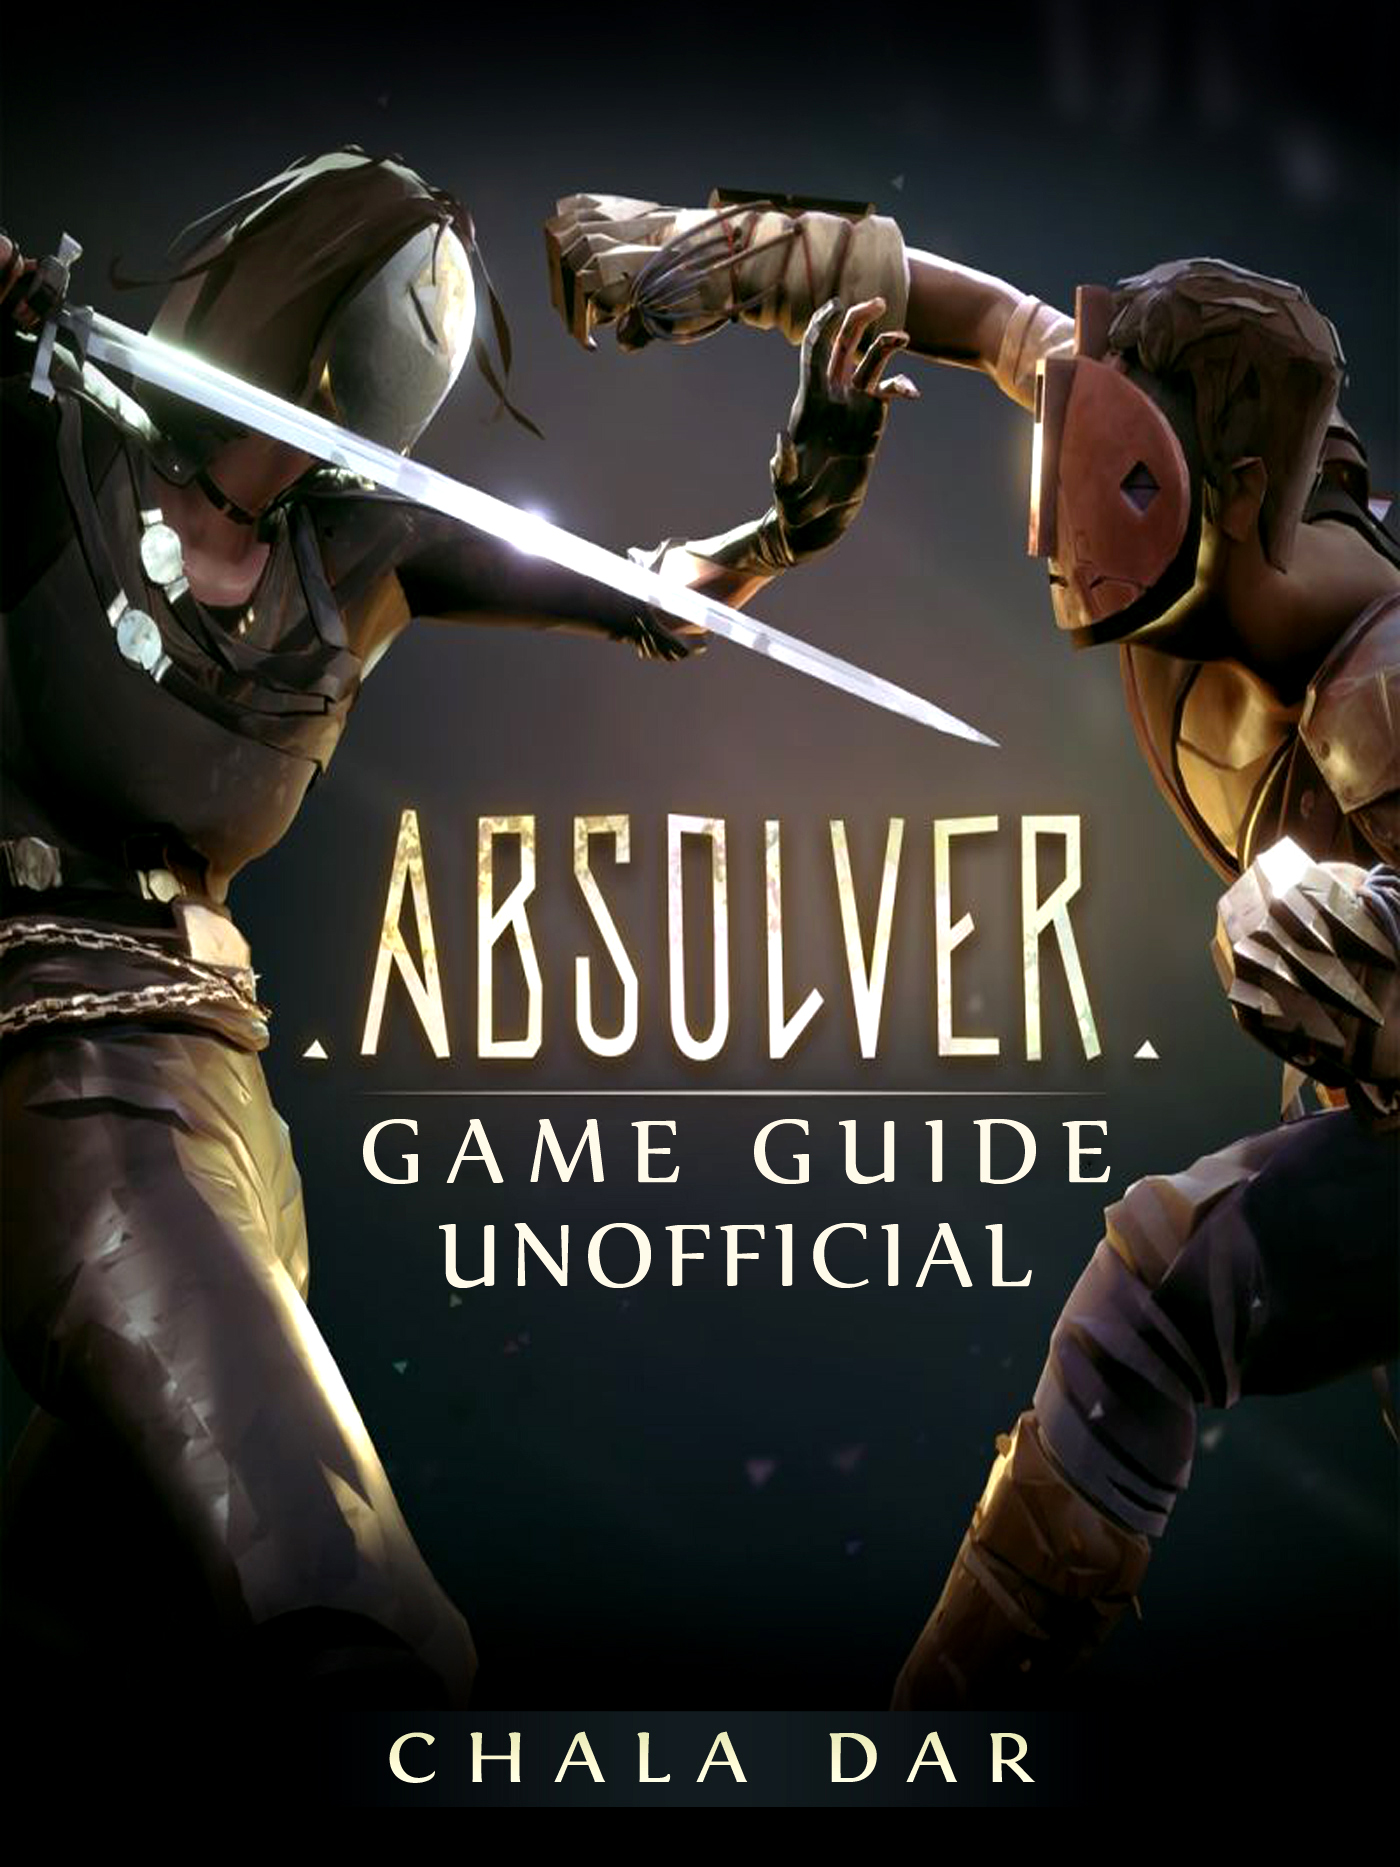 Absolver Game Guide Unofficial By Chala Dar